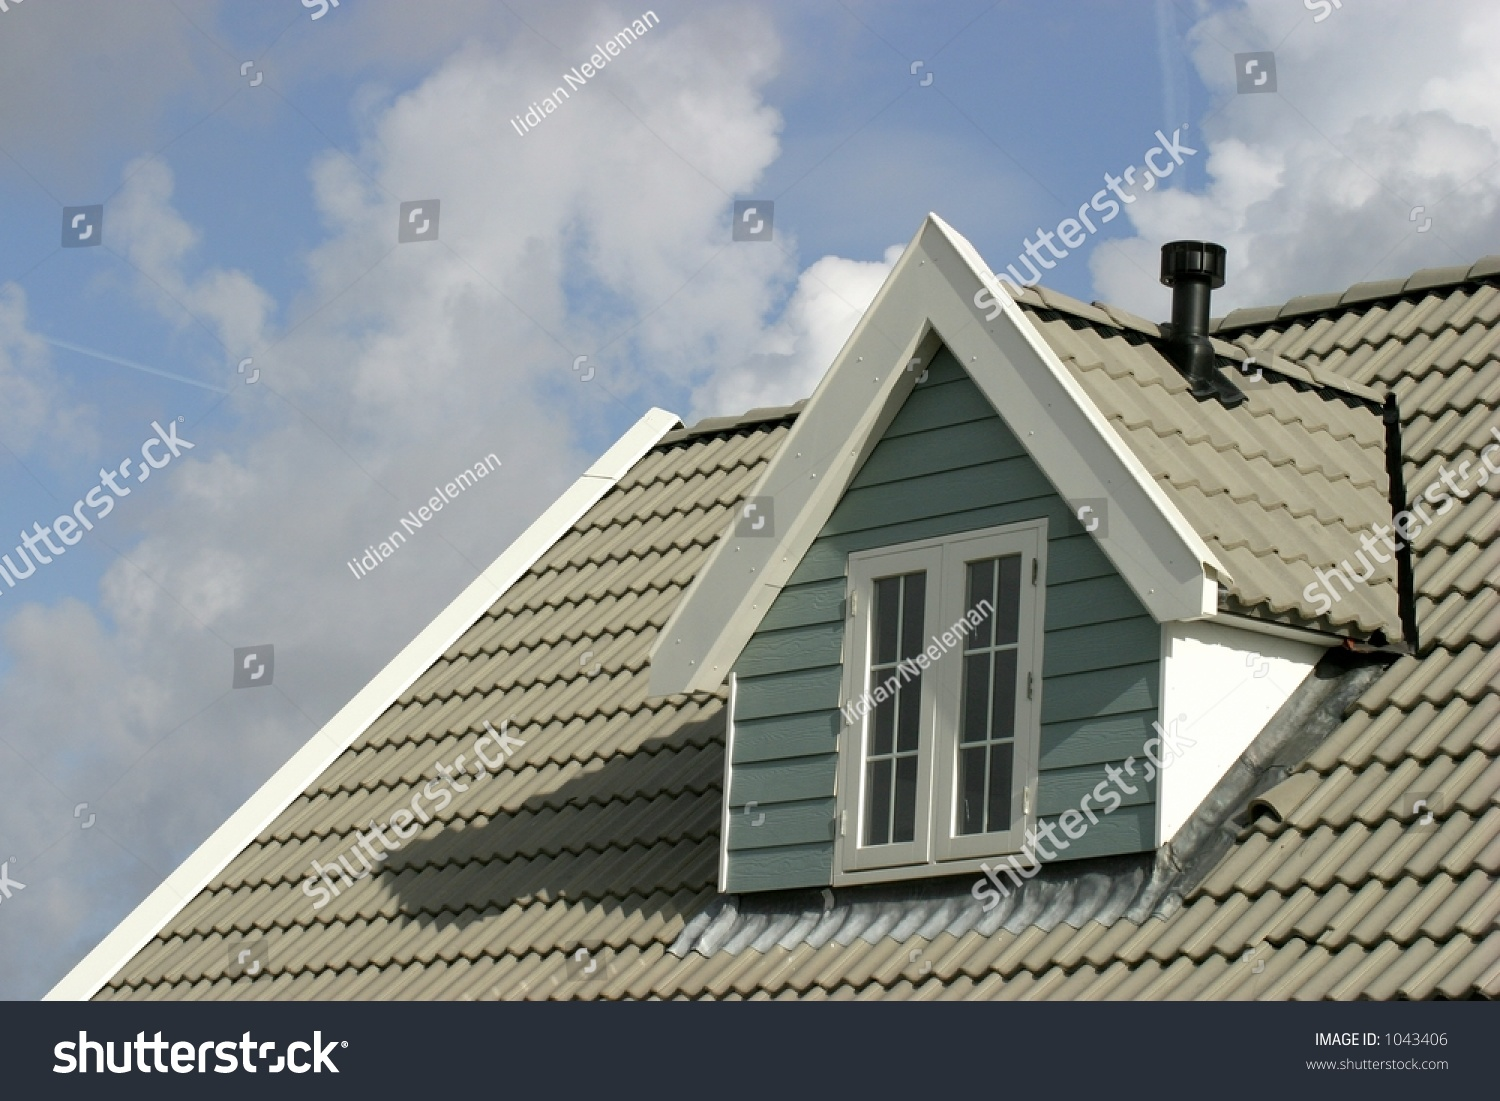 Gray Roof On Houseamerican Style Stock Photo 1043406